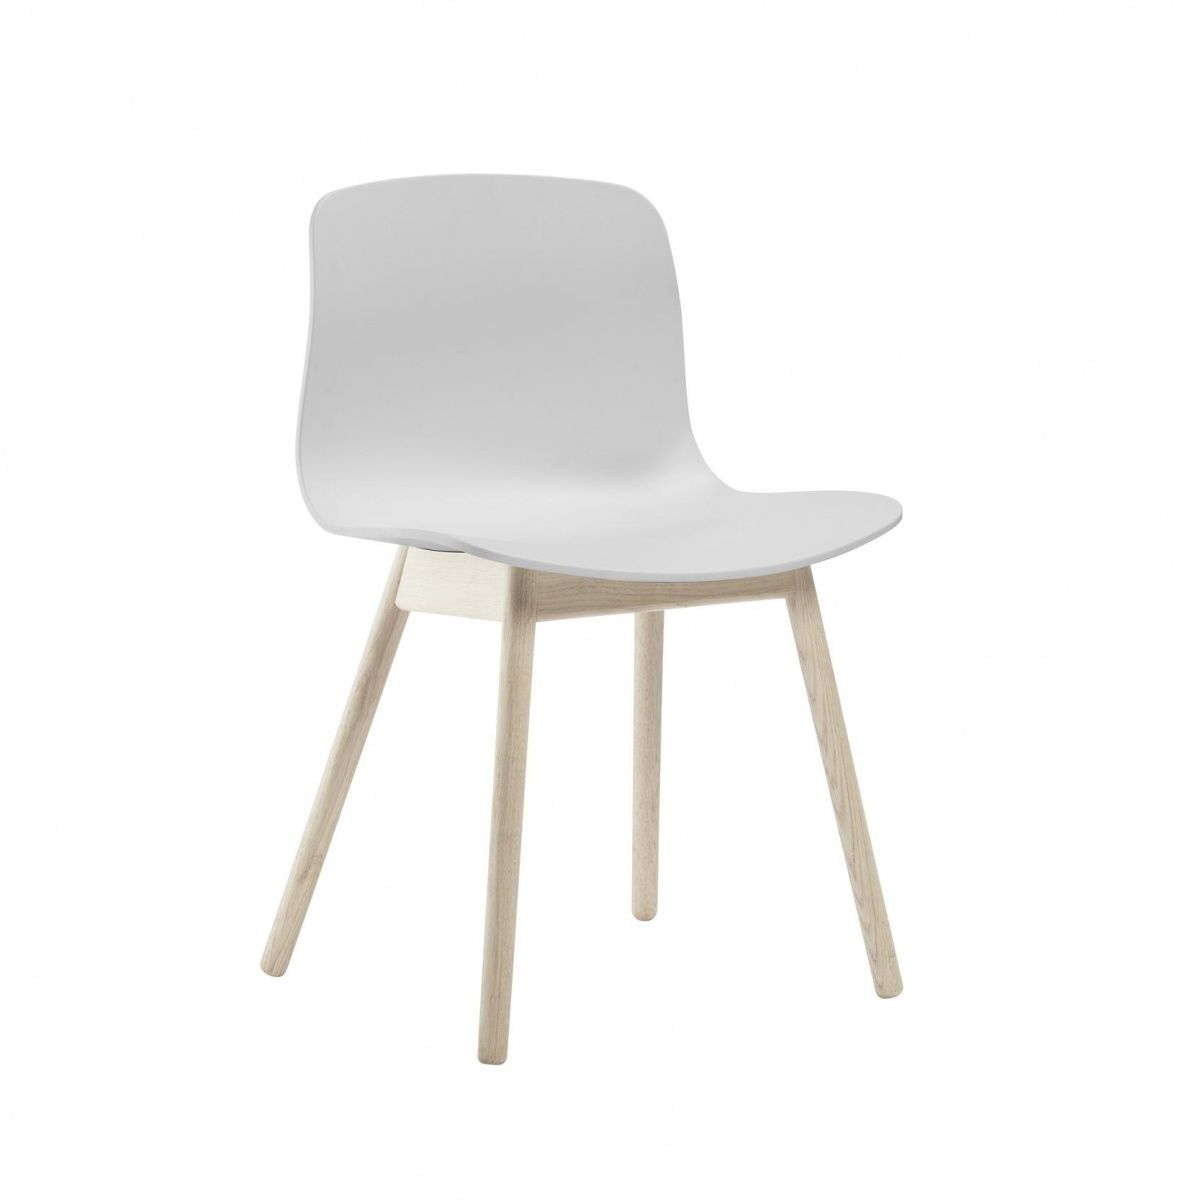 Hay About A Chair Aac 12 Stuhl Eiche Geseift Chair Furniture Chair White Dining Chairs